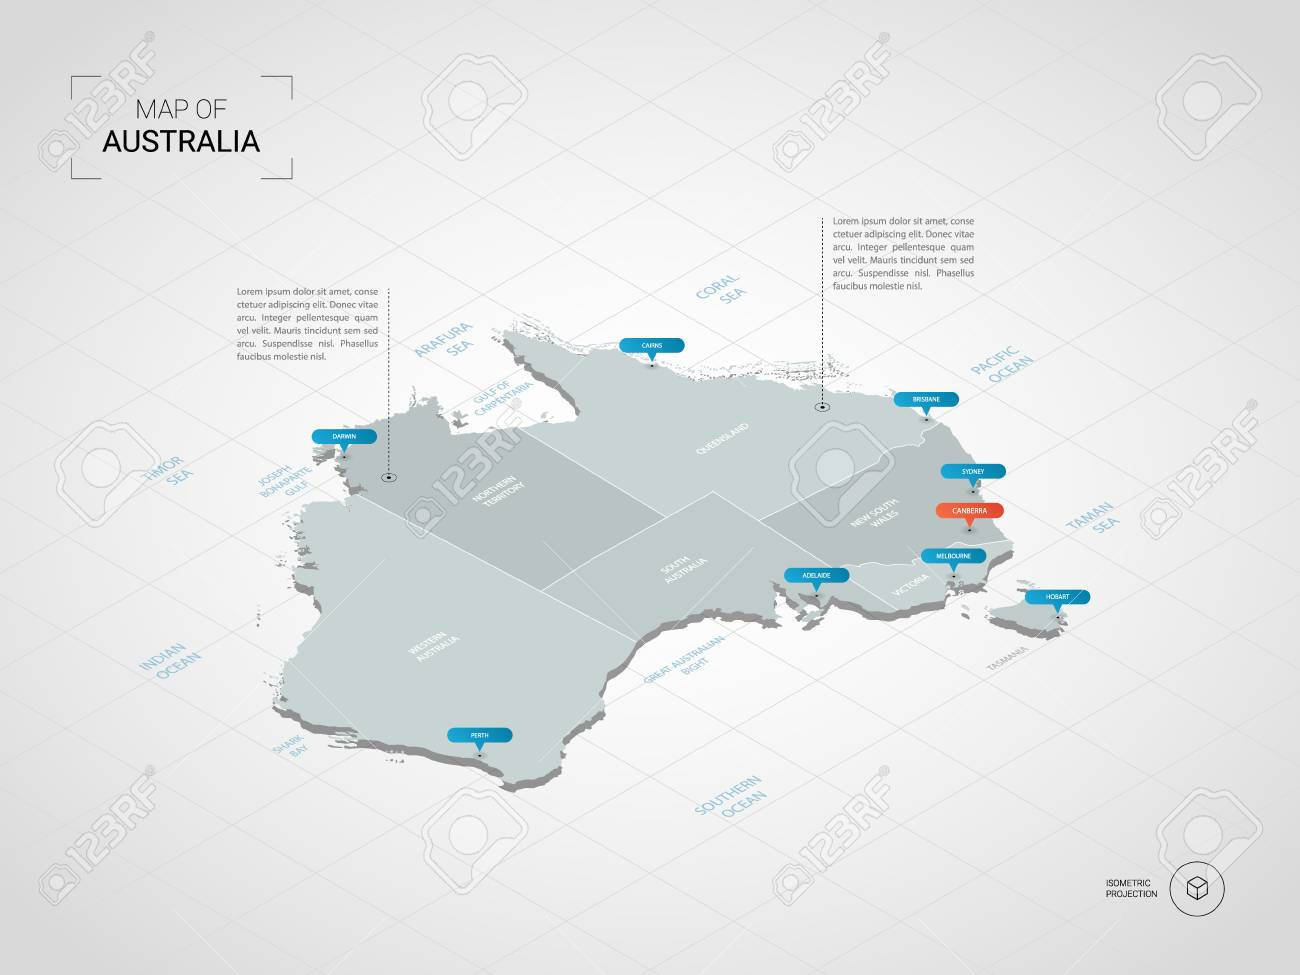 Cities Australia Map.Isometric 3d Australia Map Stylized Vector Map Illustration